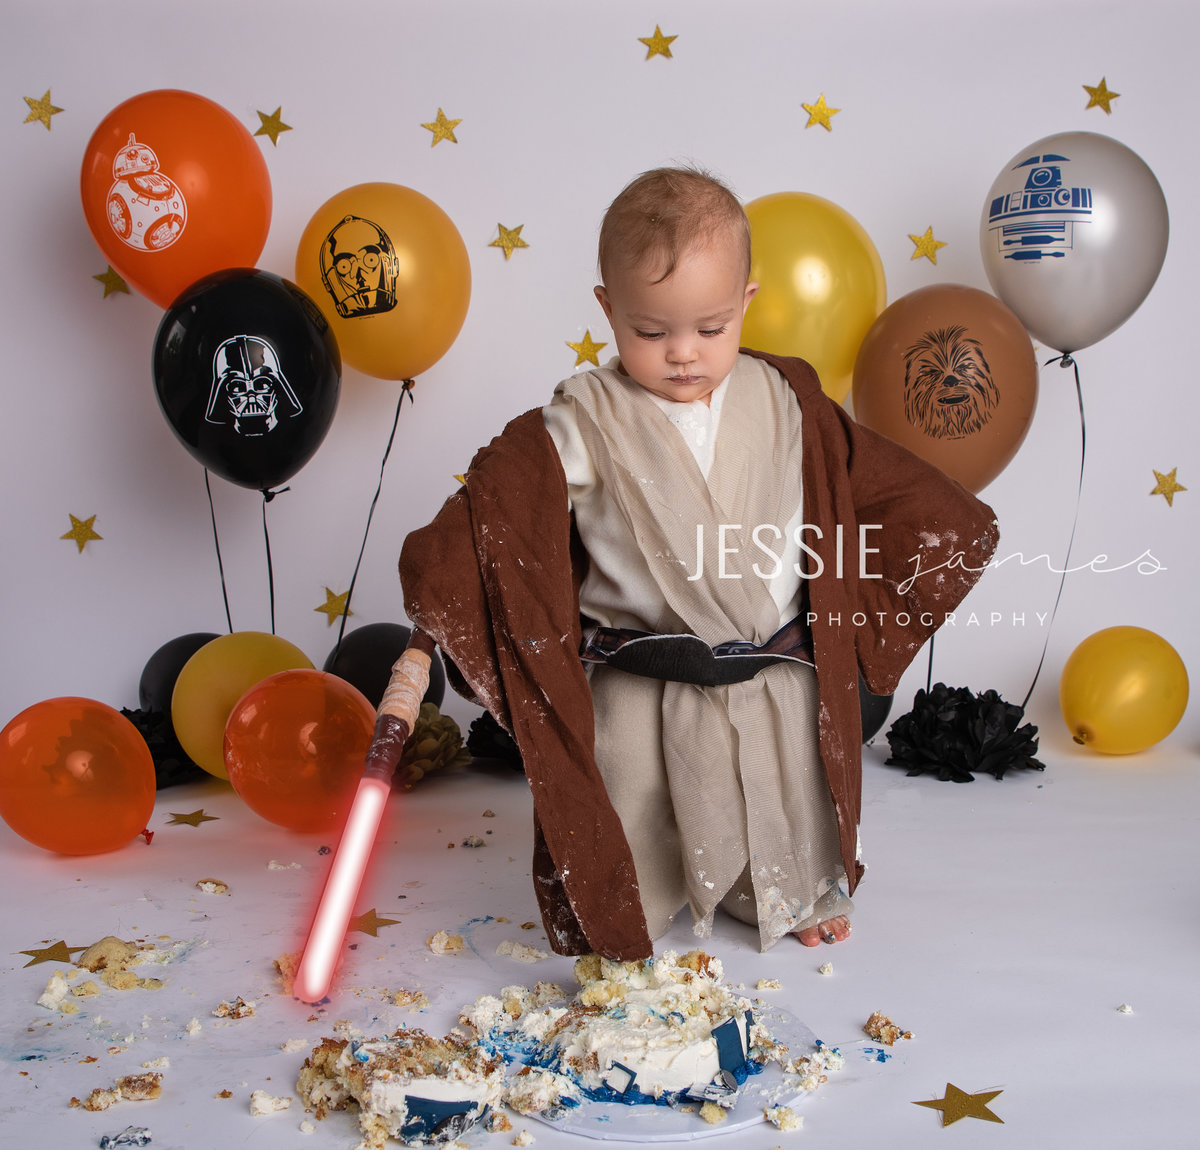 one year old girl star wars themed photo, baby is holding lightsaber and smashing her cake